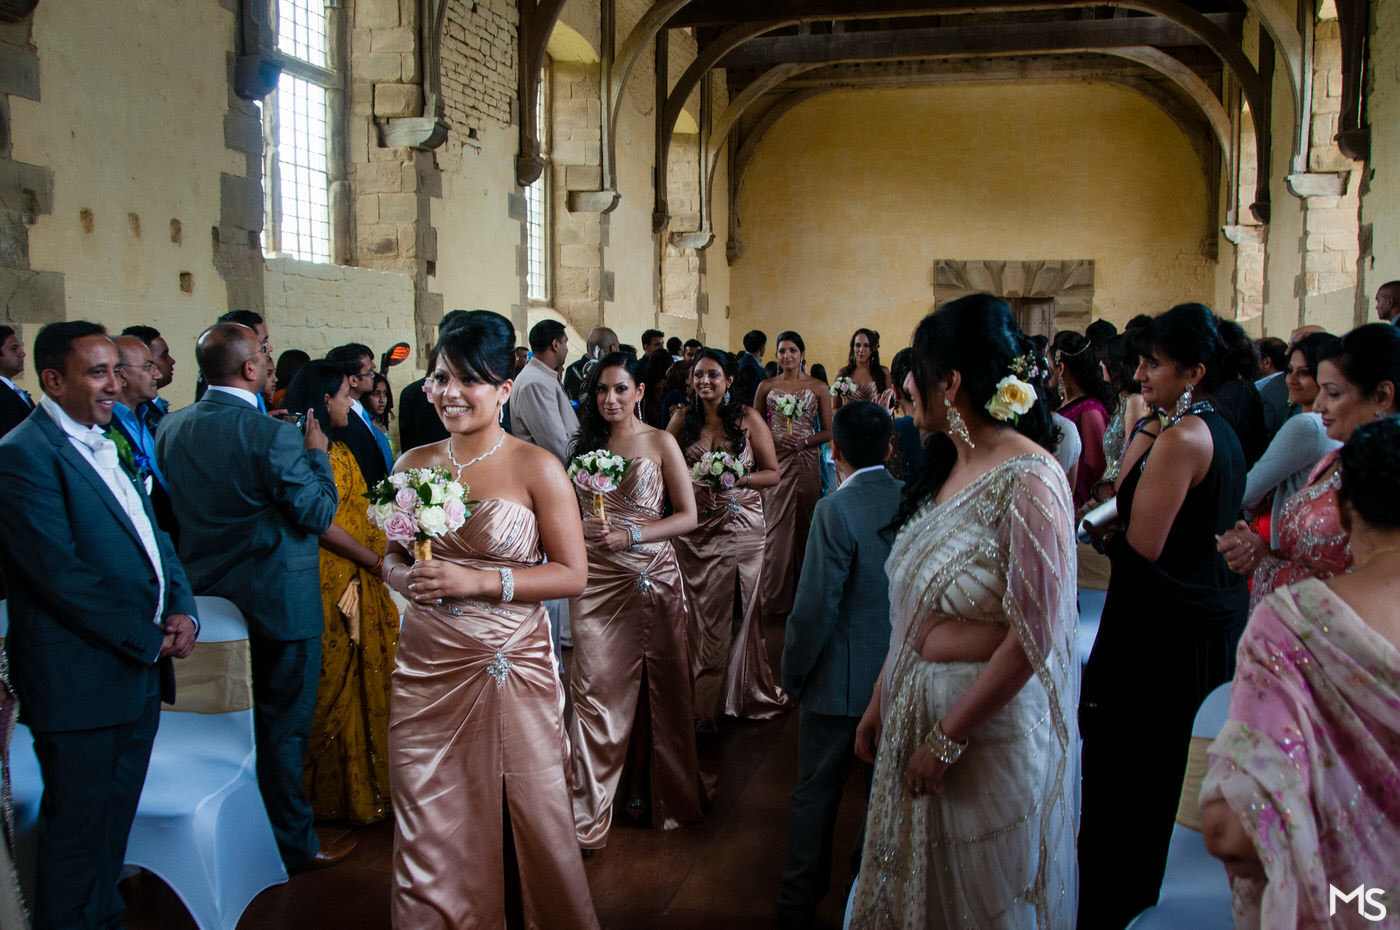 Bolsover-Castle-Indian-wedding - 9_DSC_4626.jpg